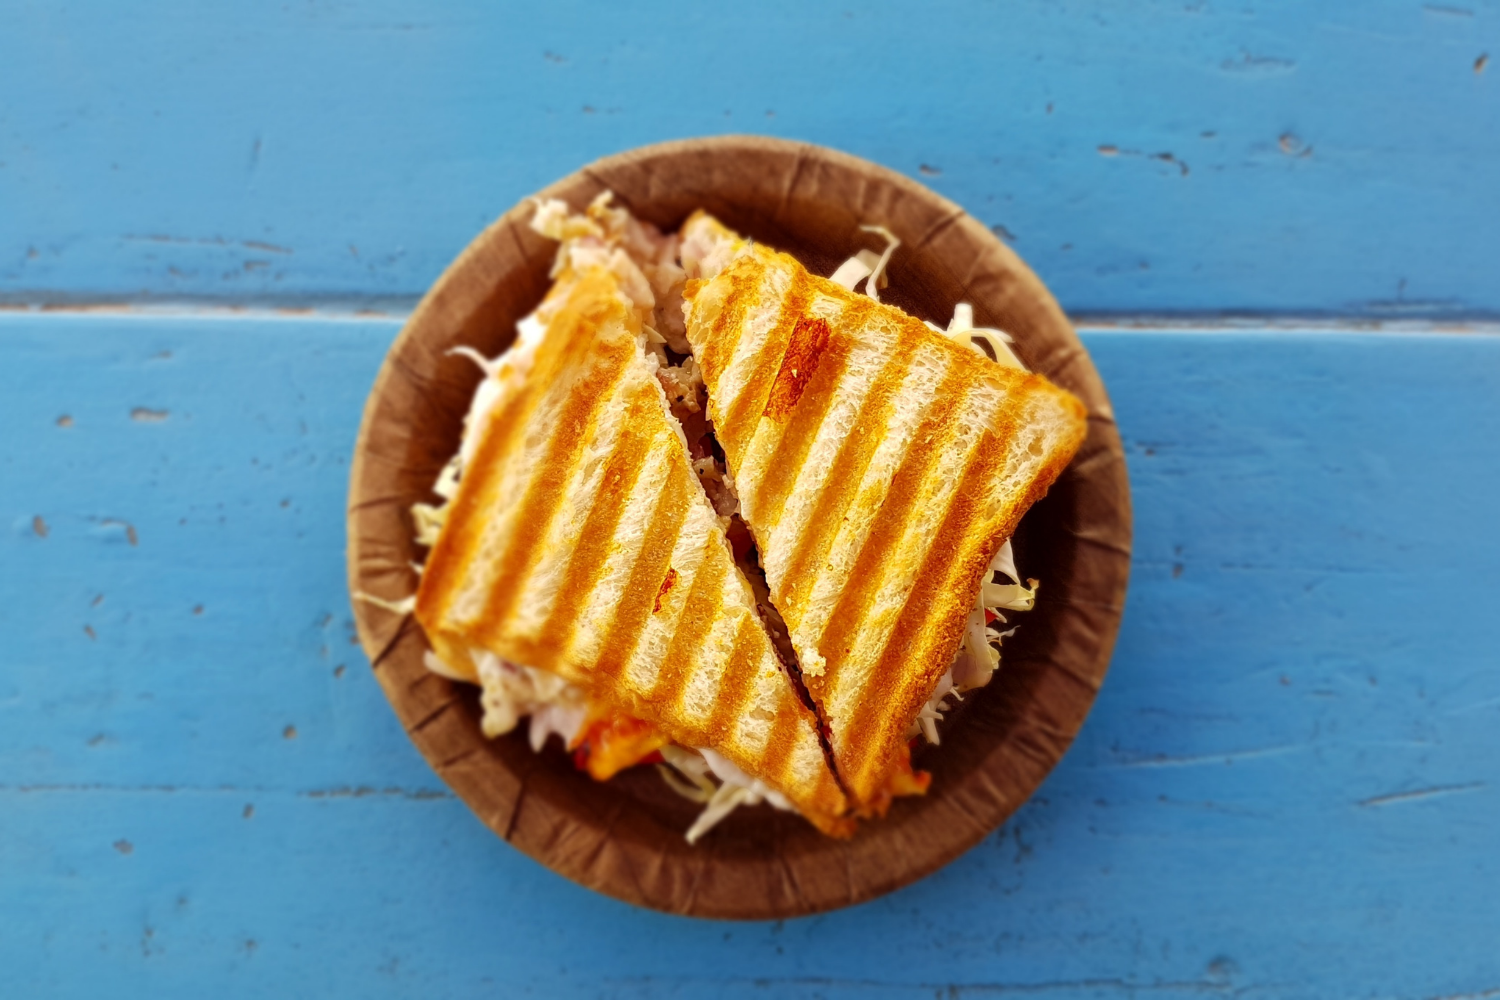 Grilled sandwich on a wooden plate on a blue table; what is the gastrocolic reflex